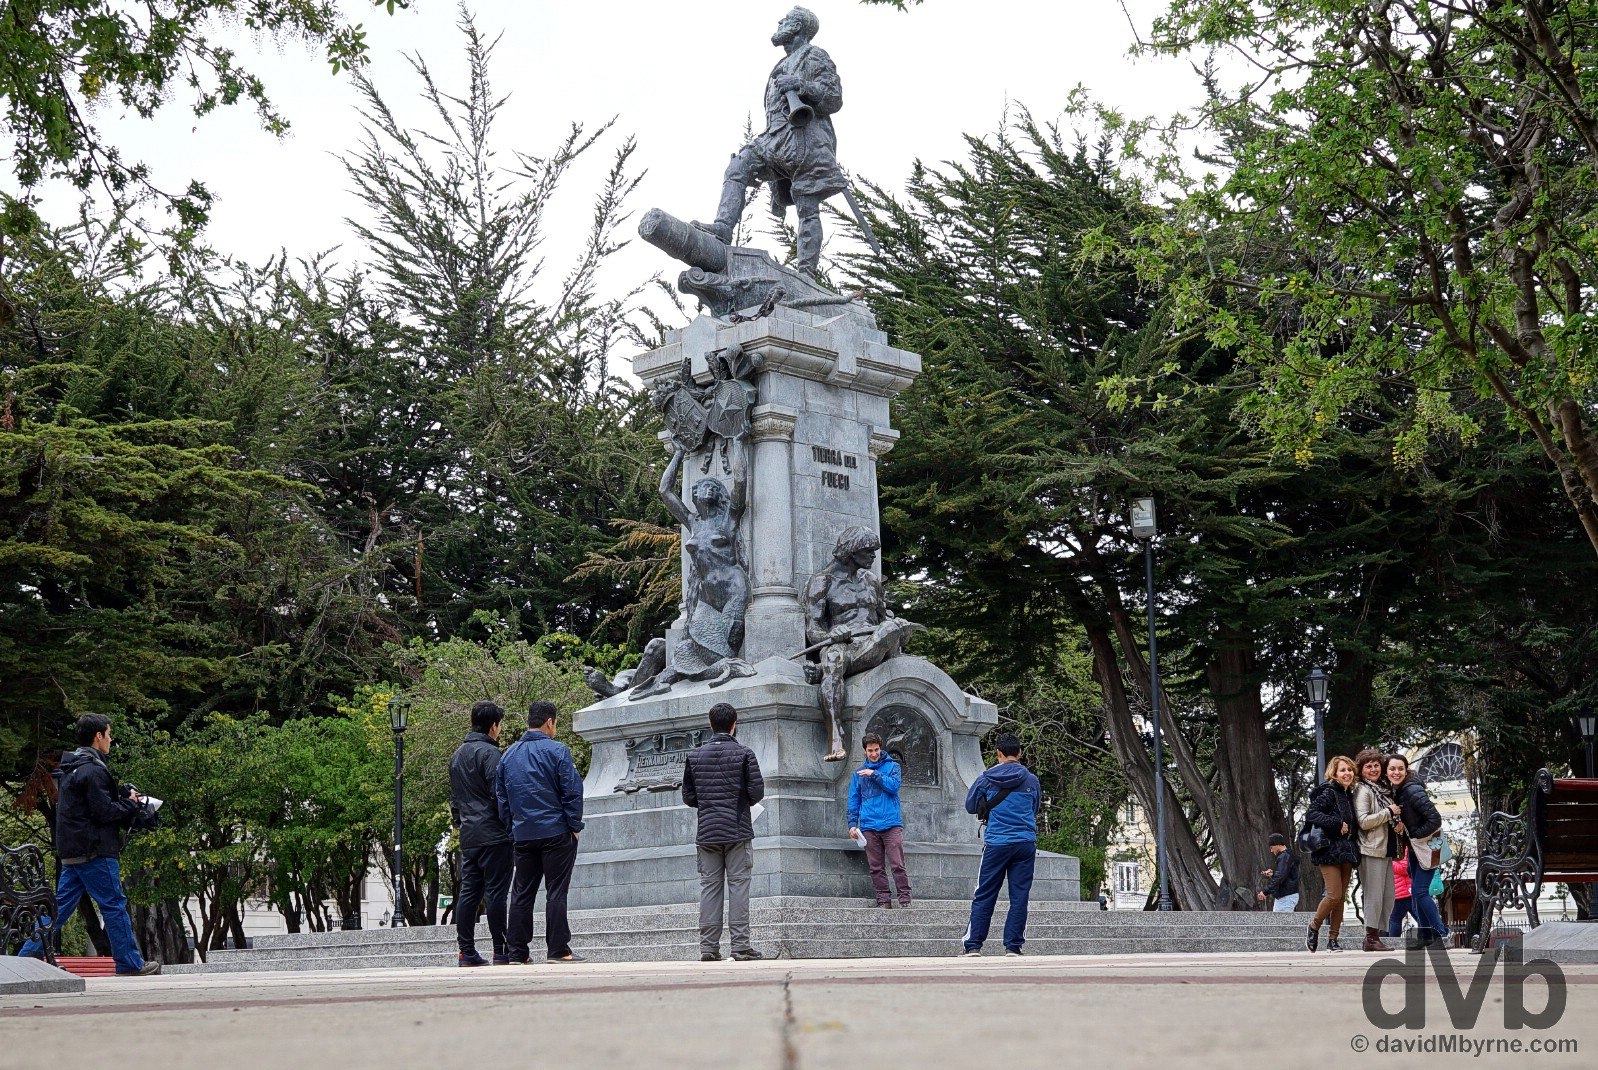 The Ferdinand Magellan status in Plaza Munoz Gamero in Punta Arenas, Chile. November 10, 2015.